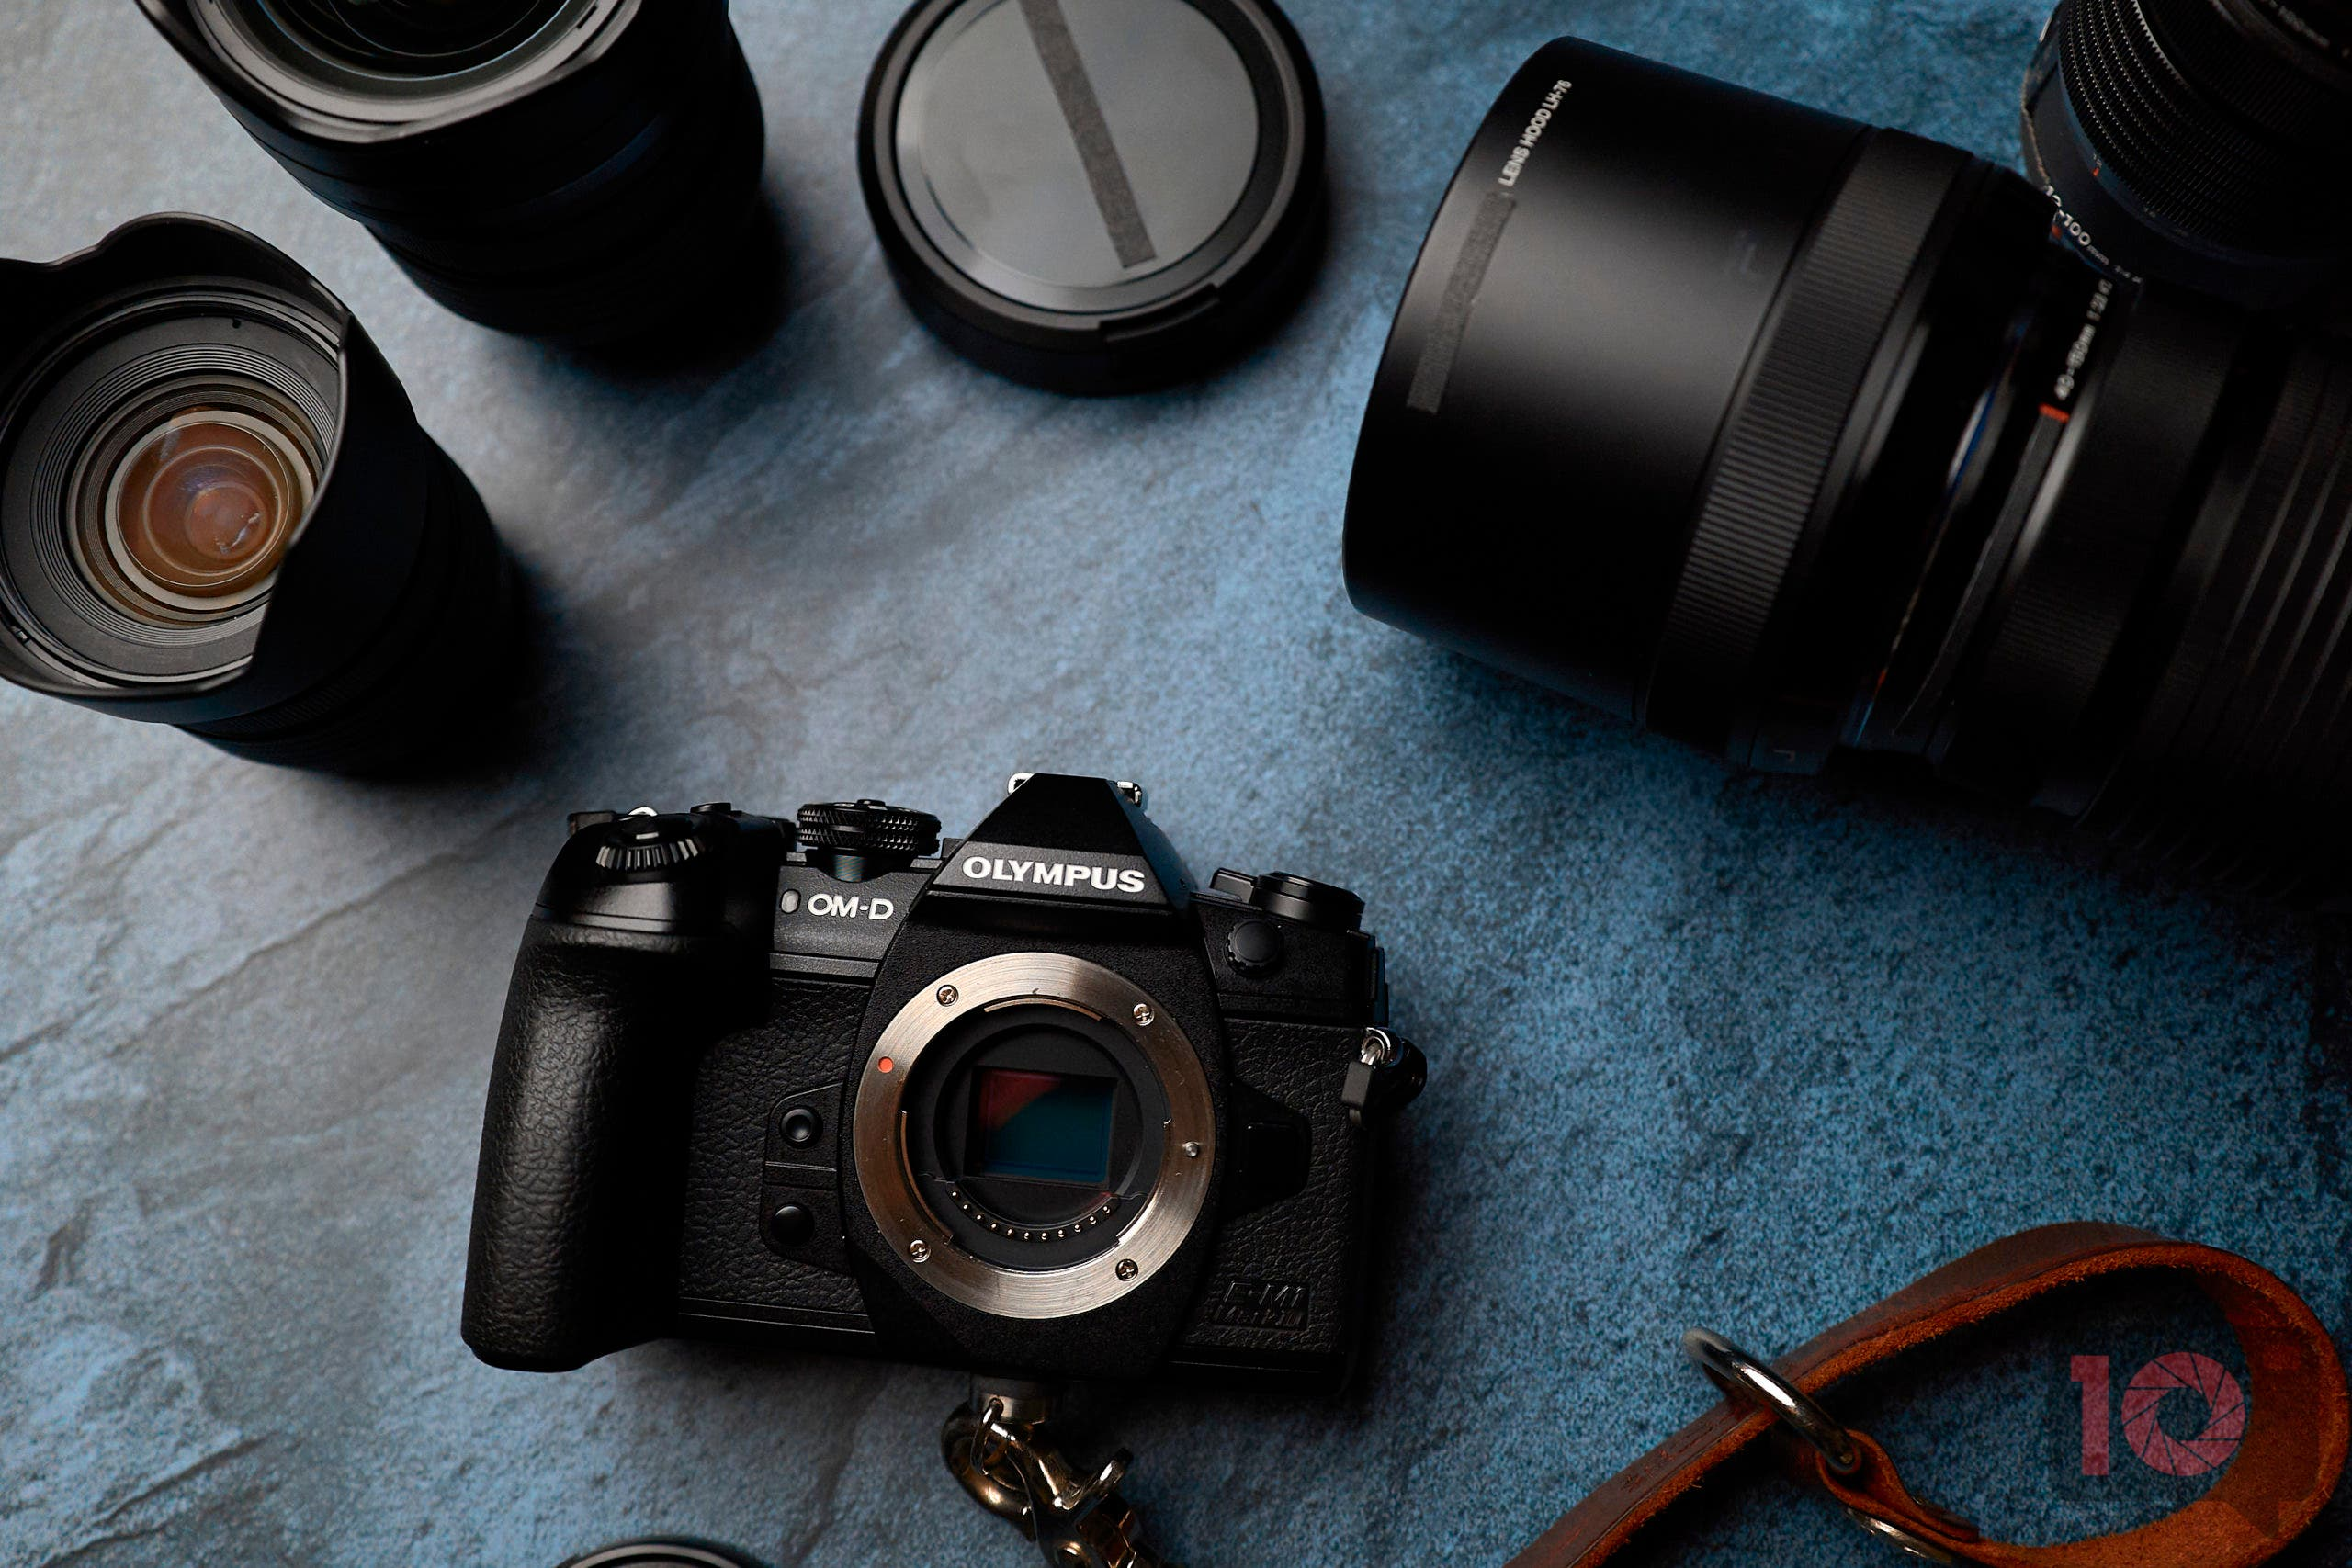 Review: Olympus OMD EM1 III (A Travel Photographer's Imperfect Gem)